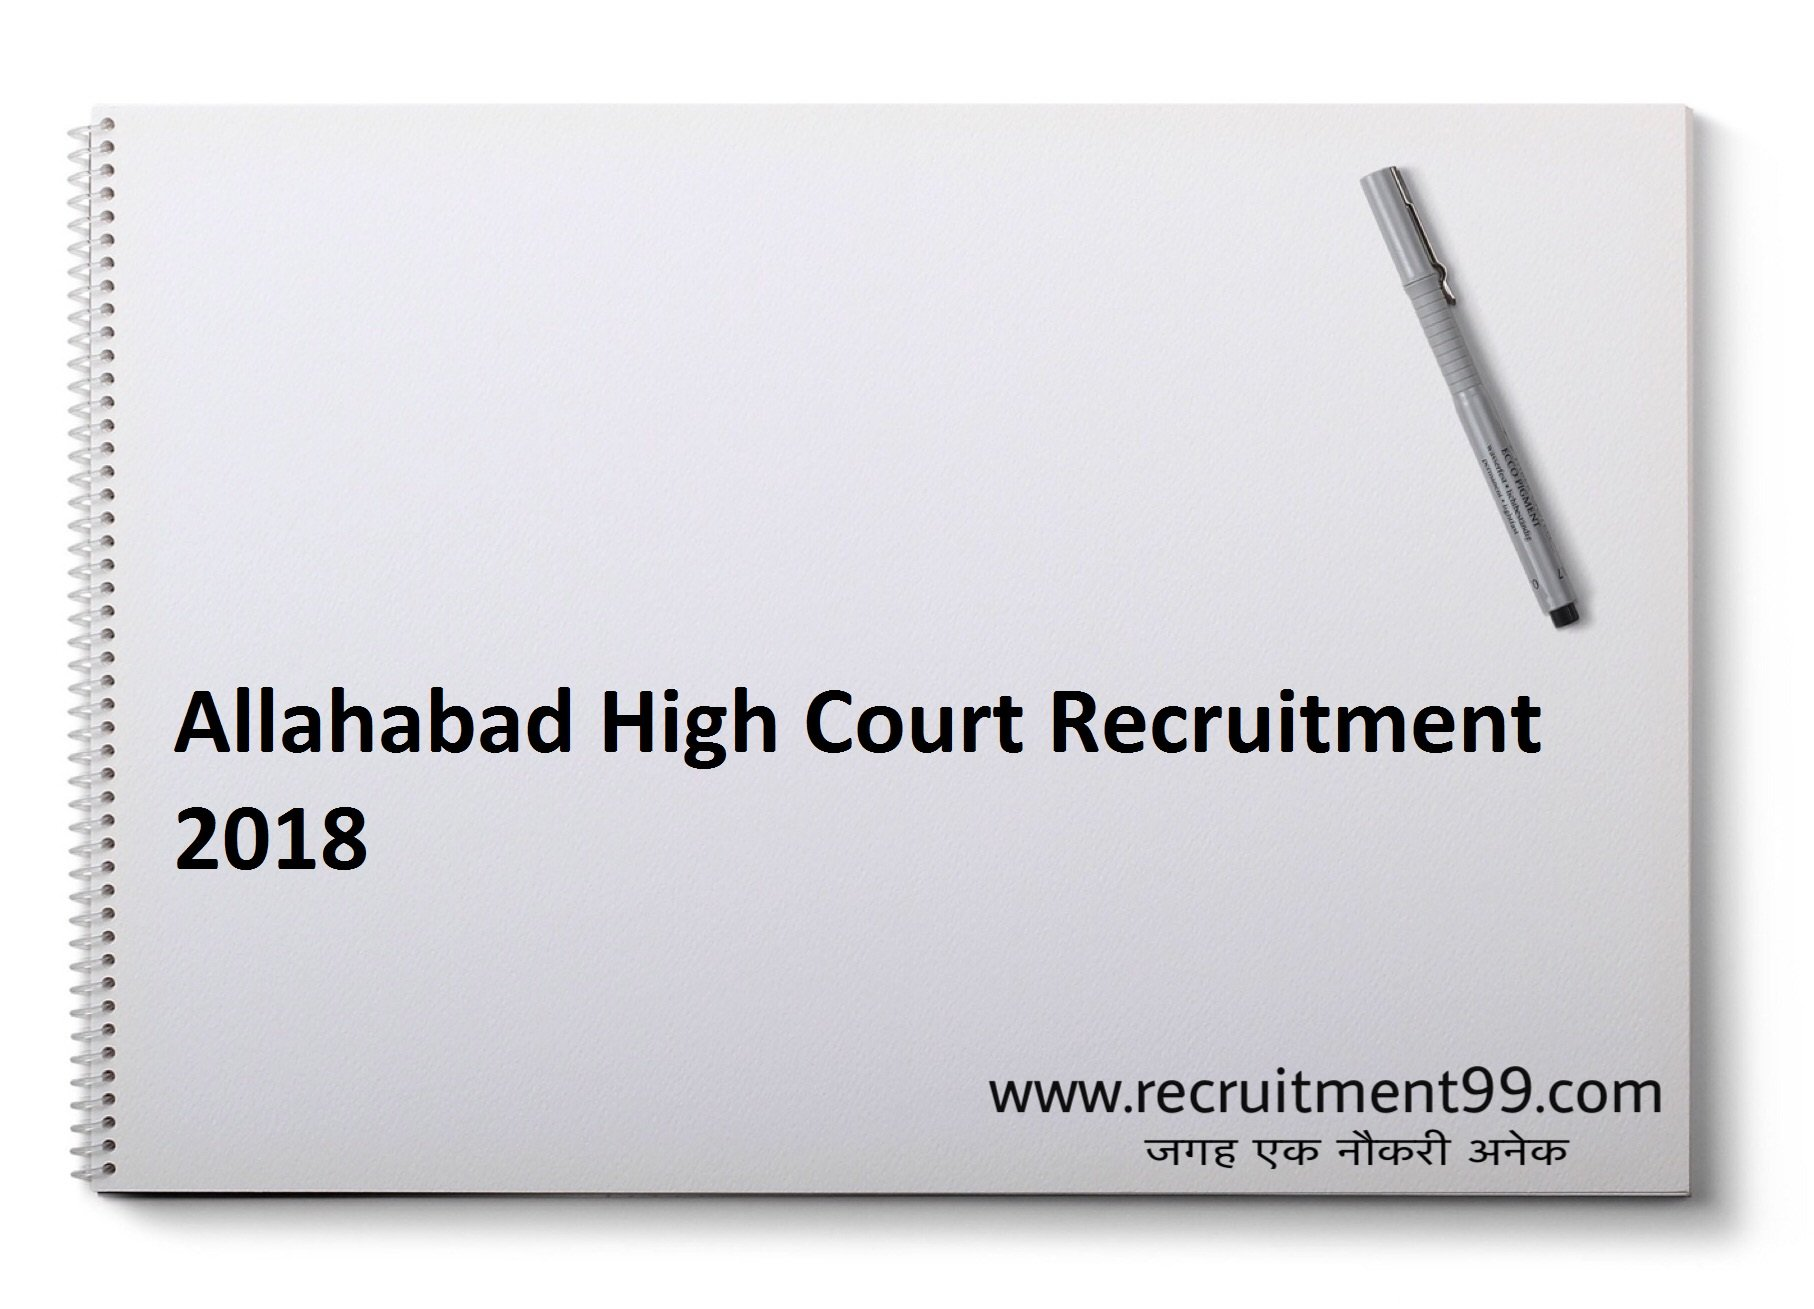 Allahabad High CourtSweeper Cook Mali Farrash Recruitment Admit Card & Result 2018